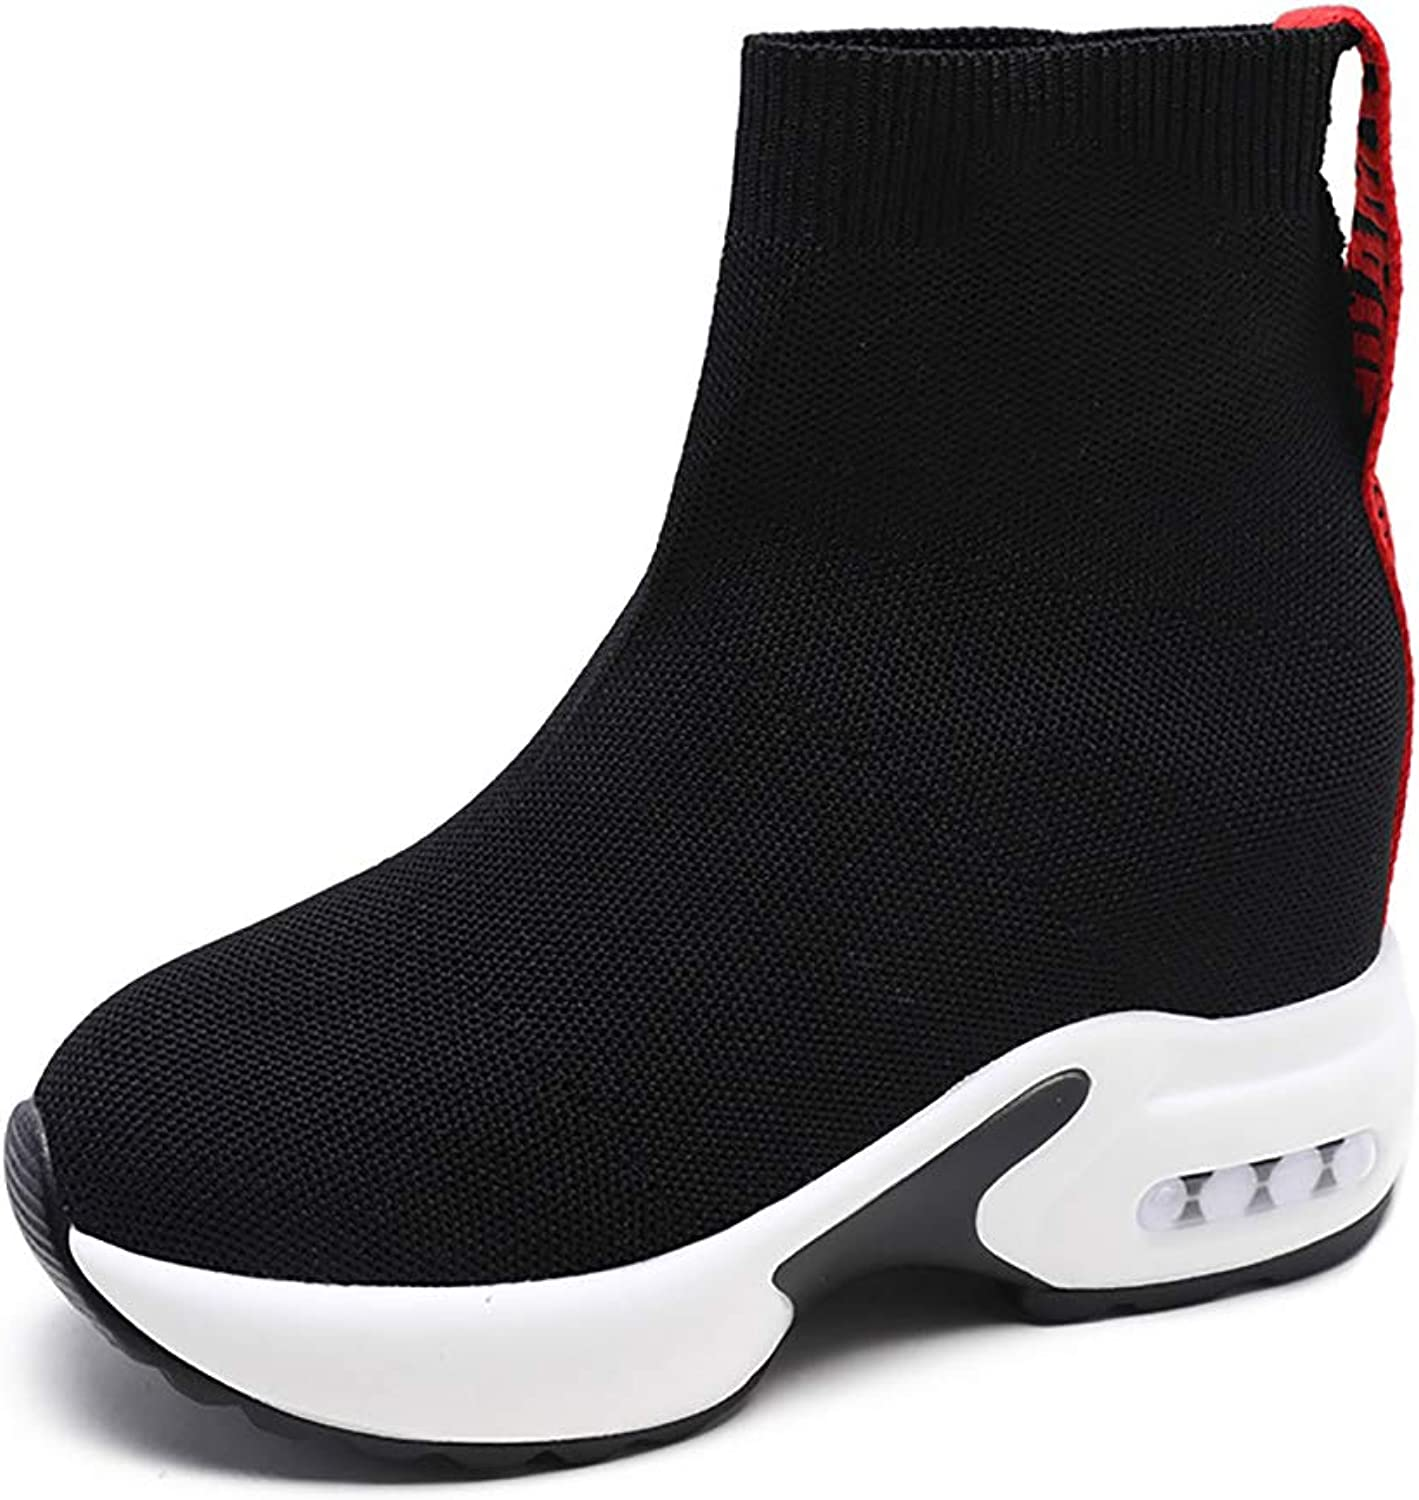 Winter Boots Women, with Comfortable Flat Solid color Women's shoes,Red,37